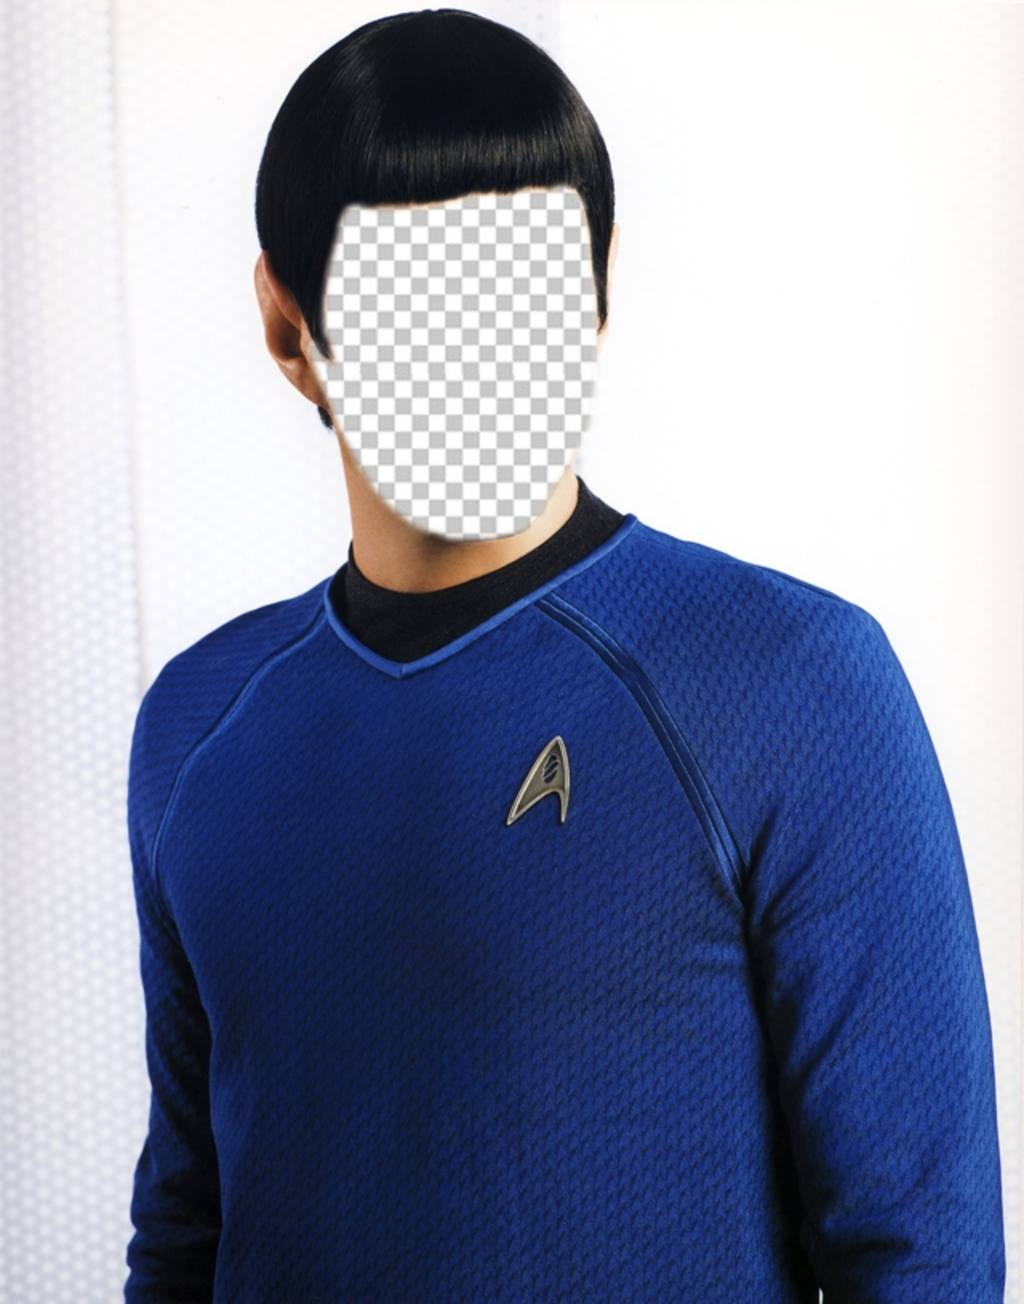 Become in Spock of Star Trek with this photomontage online